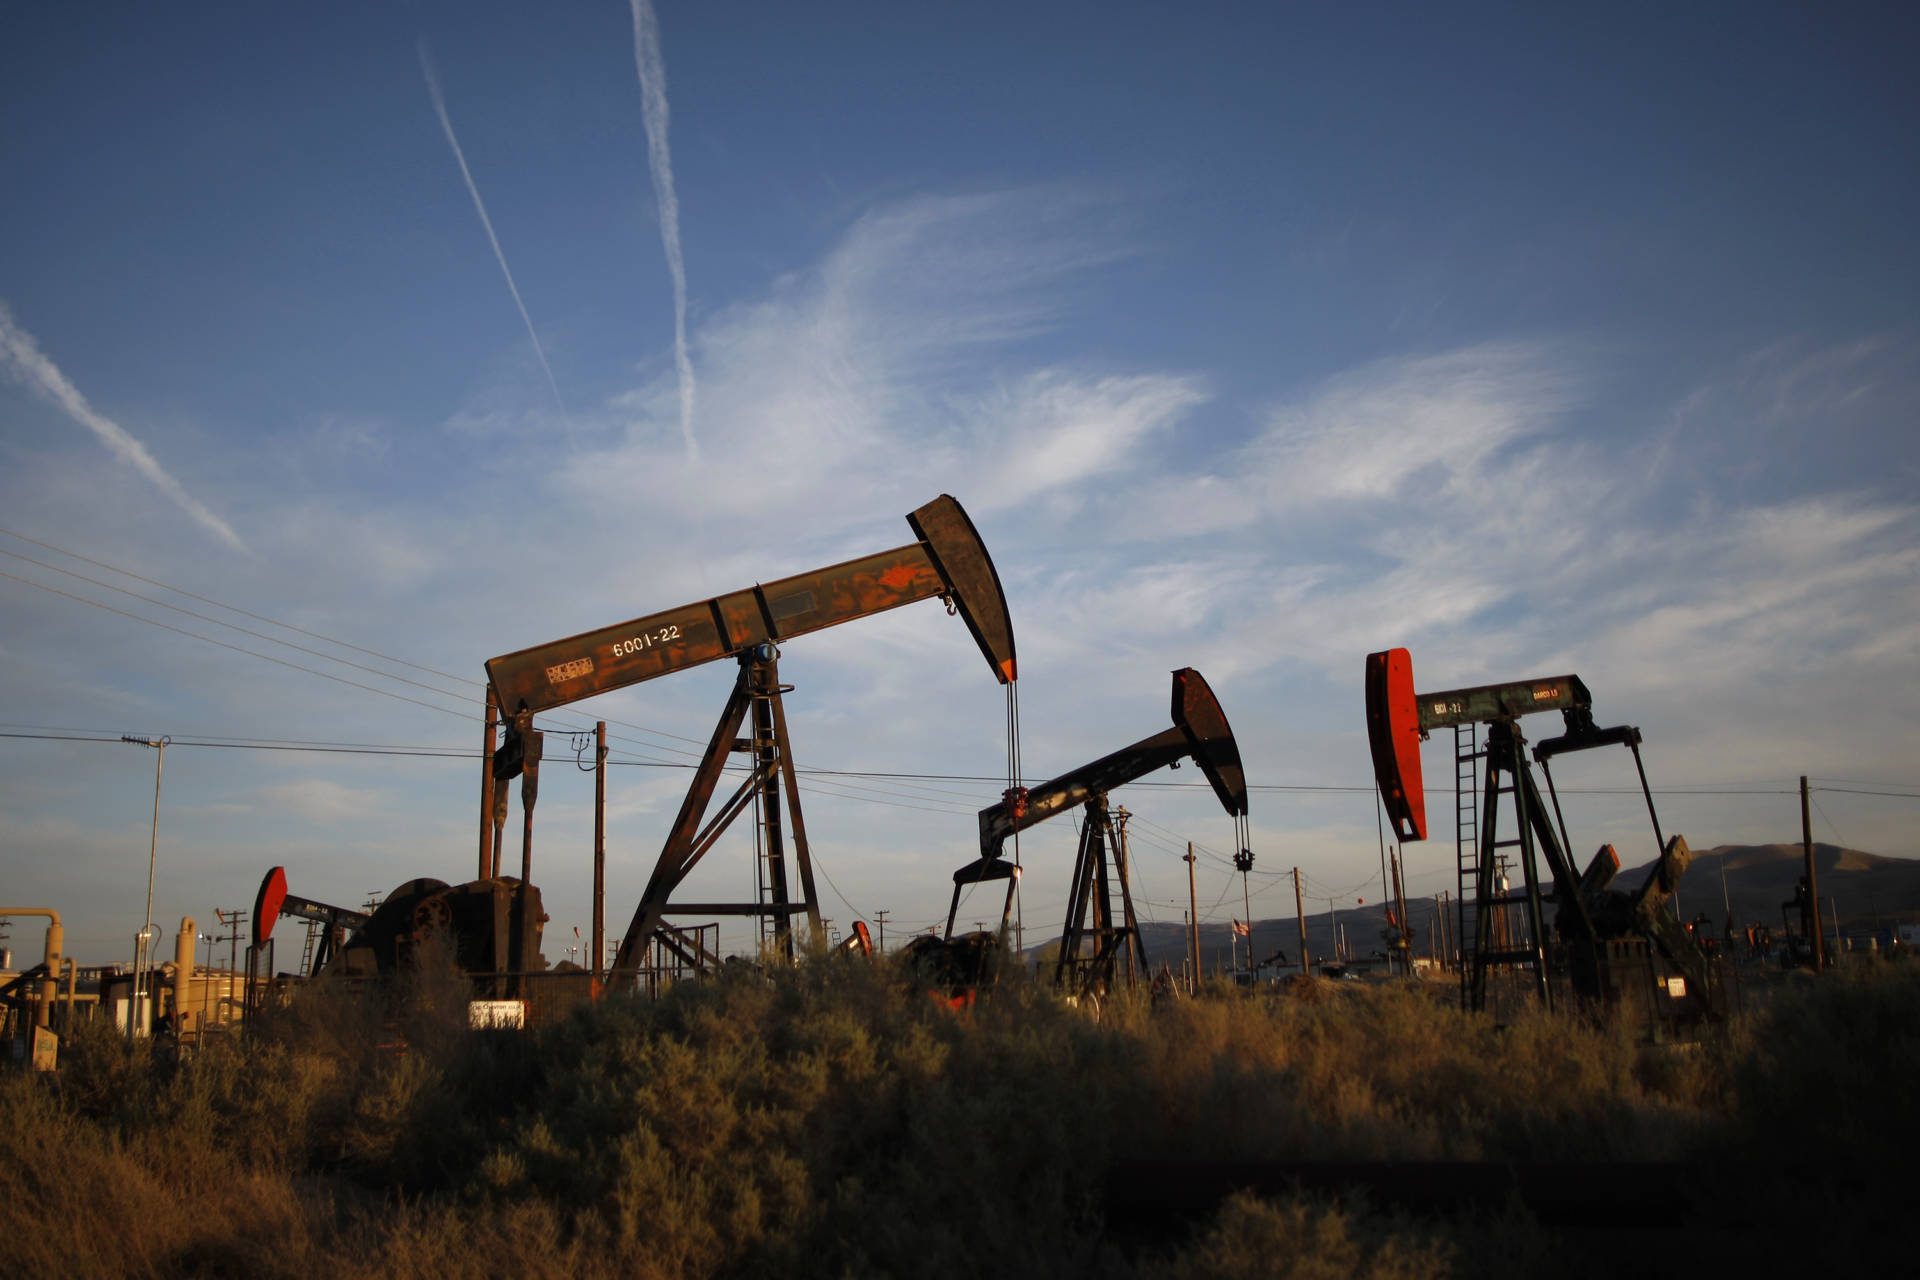 Not Just Fracking: Cut All Oil Drilling in California, Says Key Lawmaker | KQED